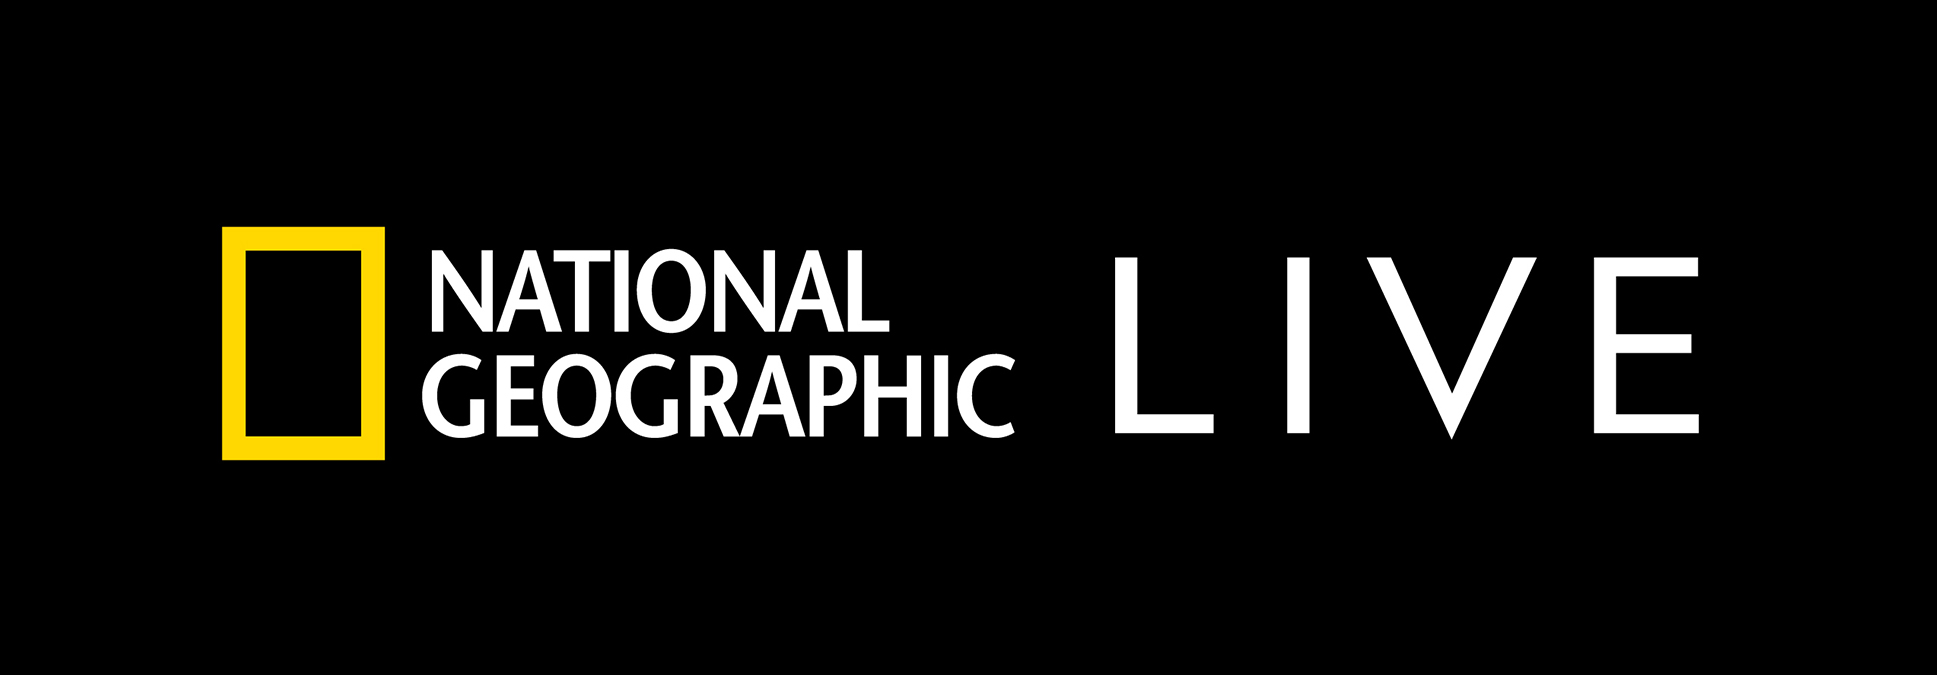 National Geographic Live! at the Marcus Center in Milwaukee